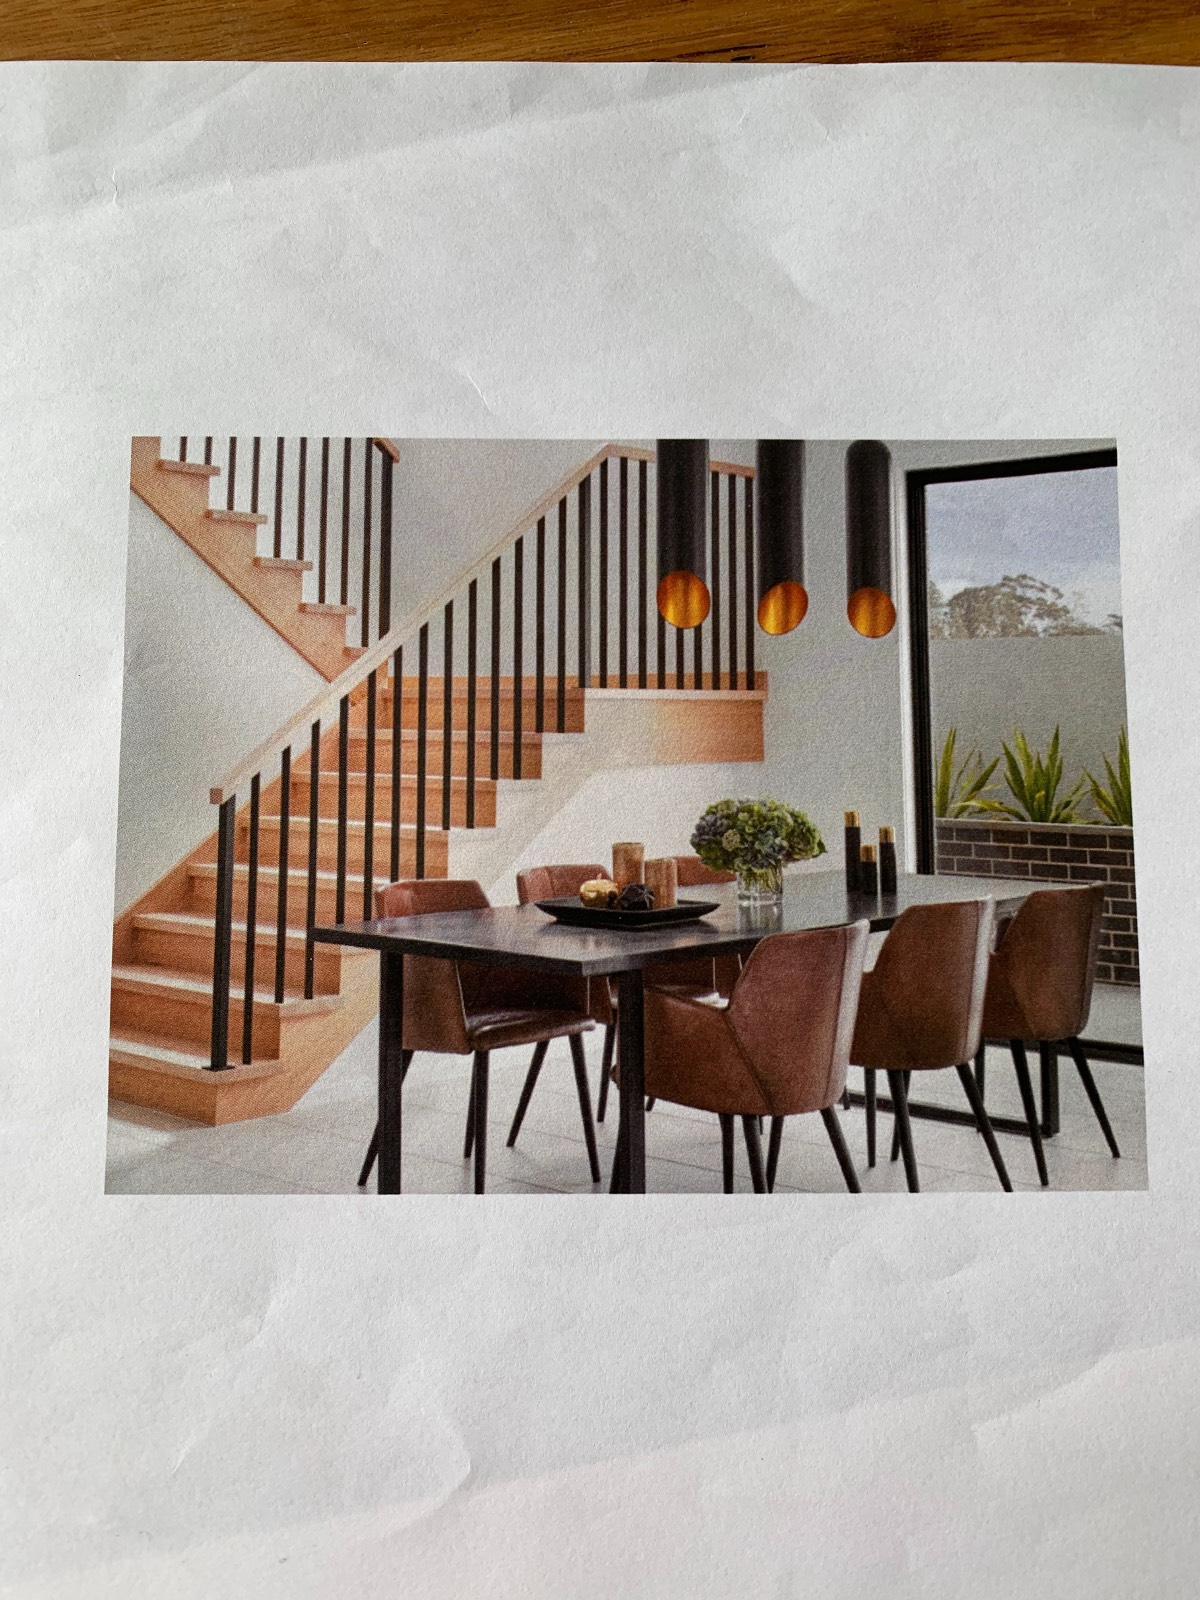 Let's talk staircases- Metricon build